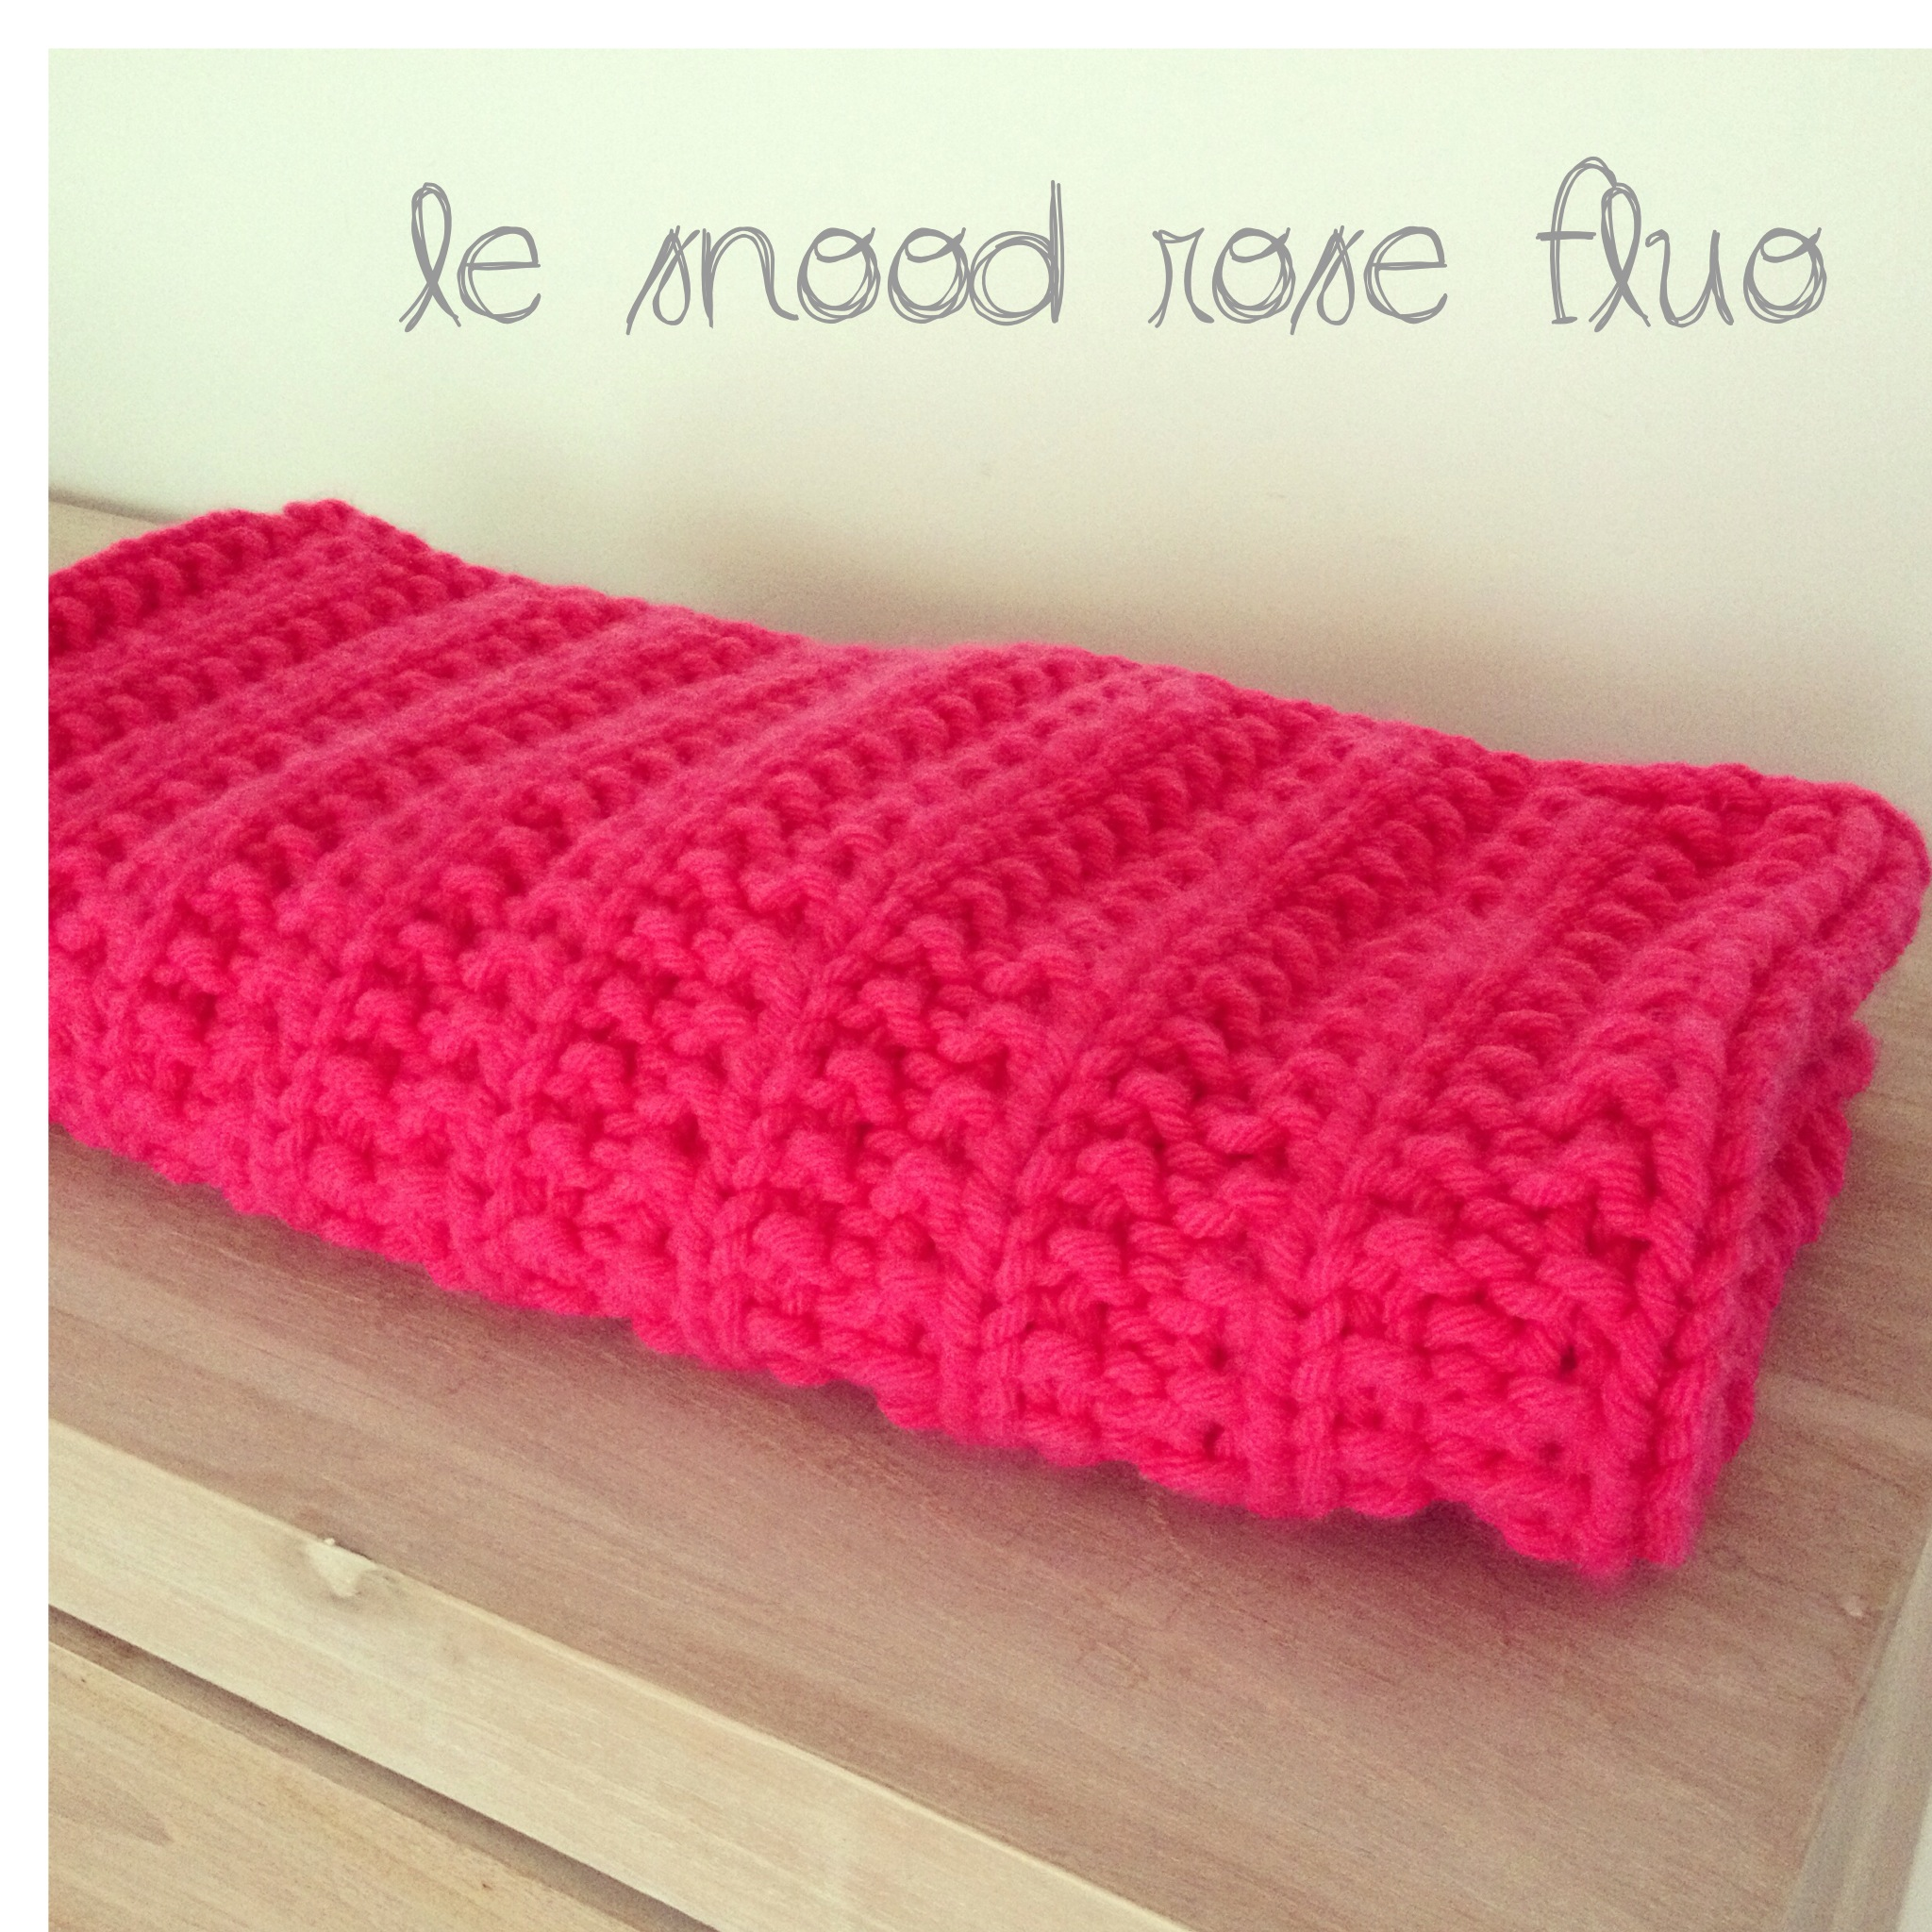 Le snood rose fluo